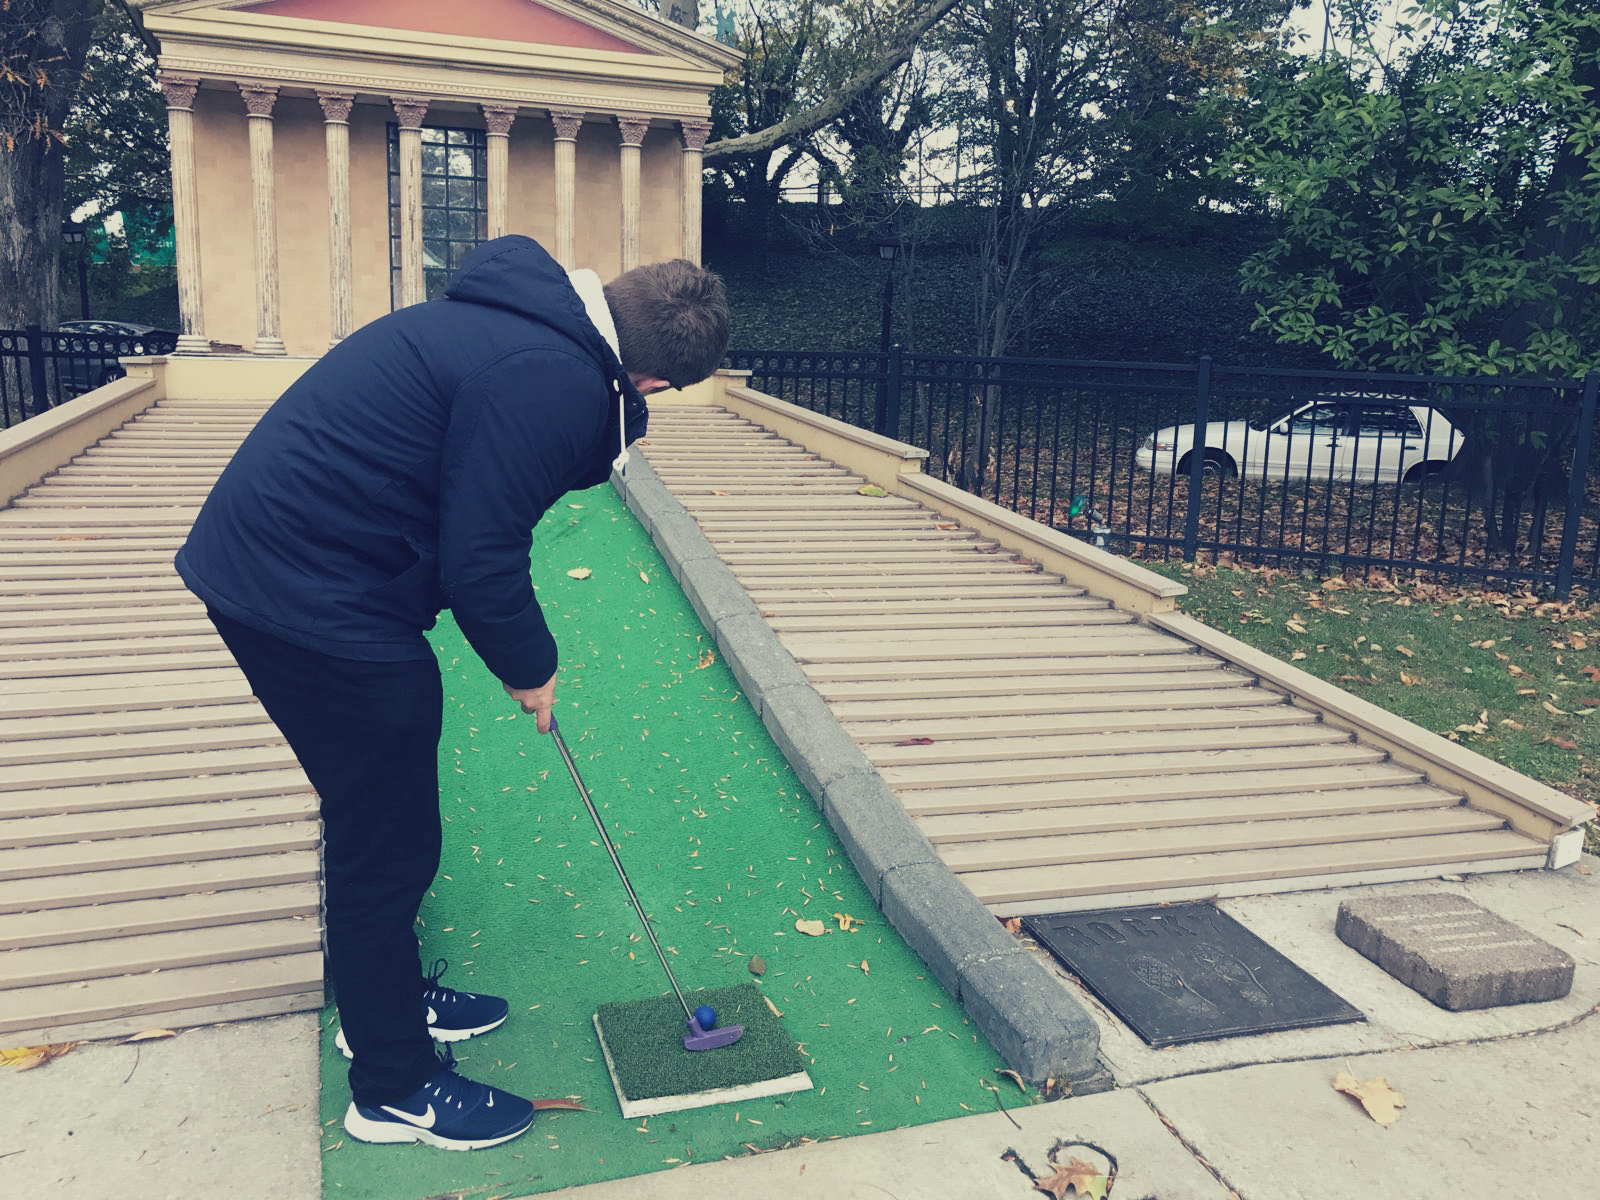 Philly mini golf Franklin Square